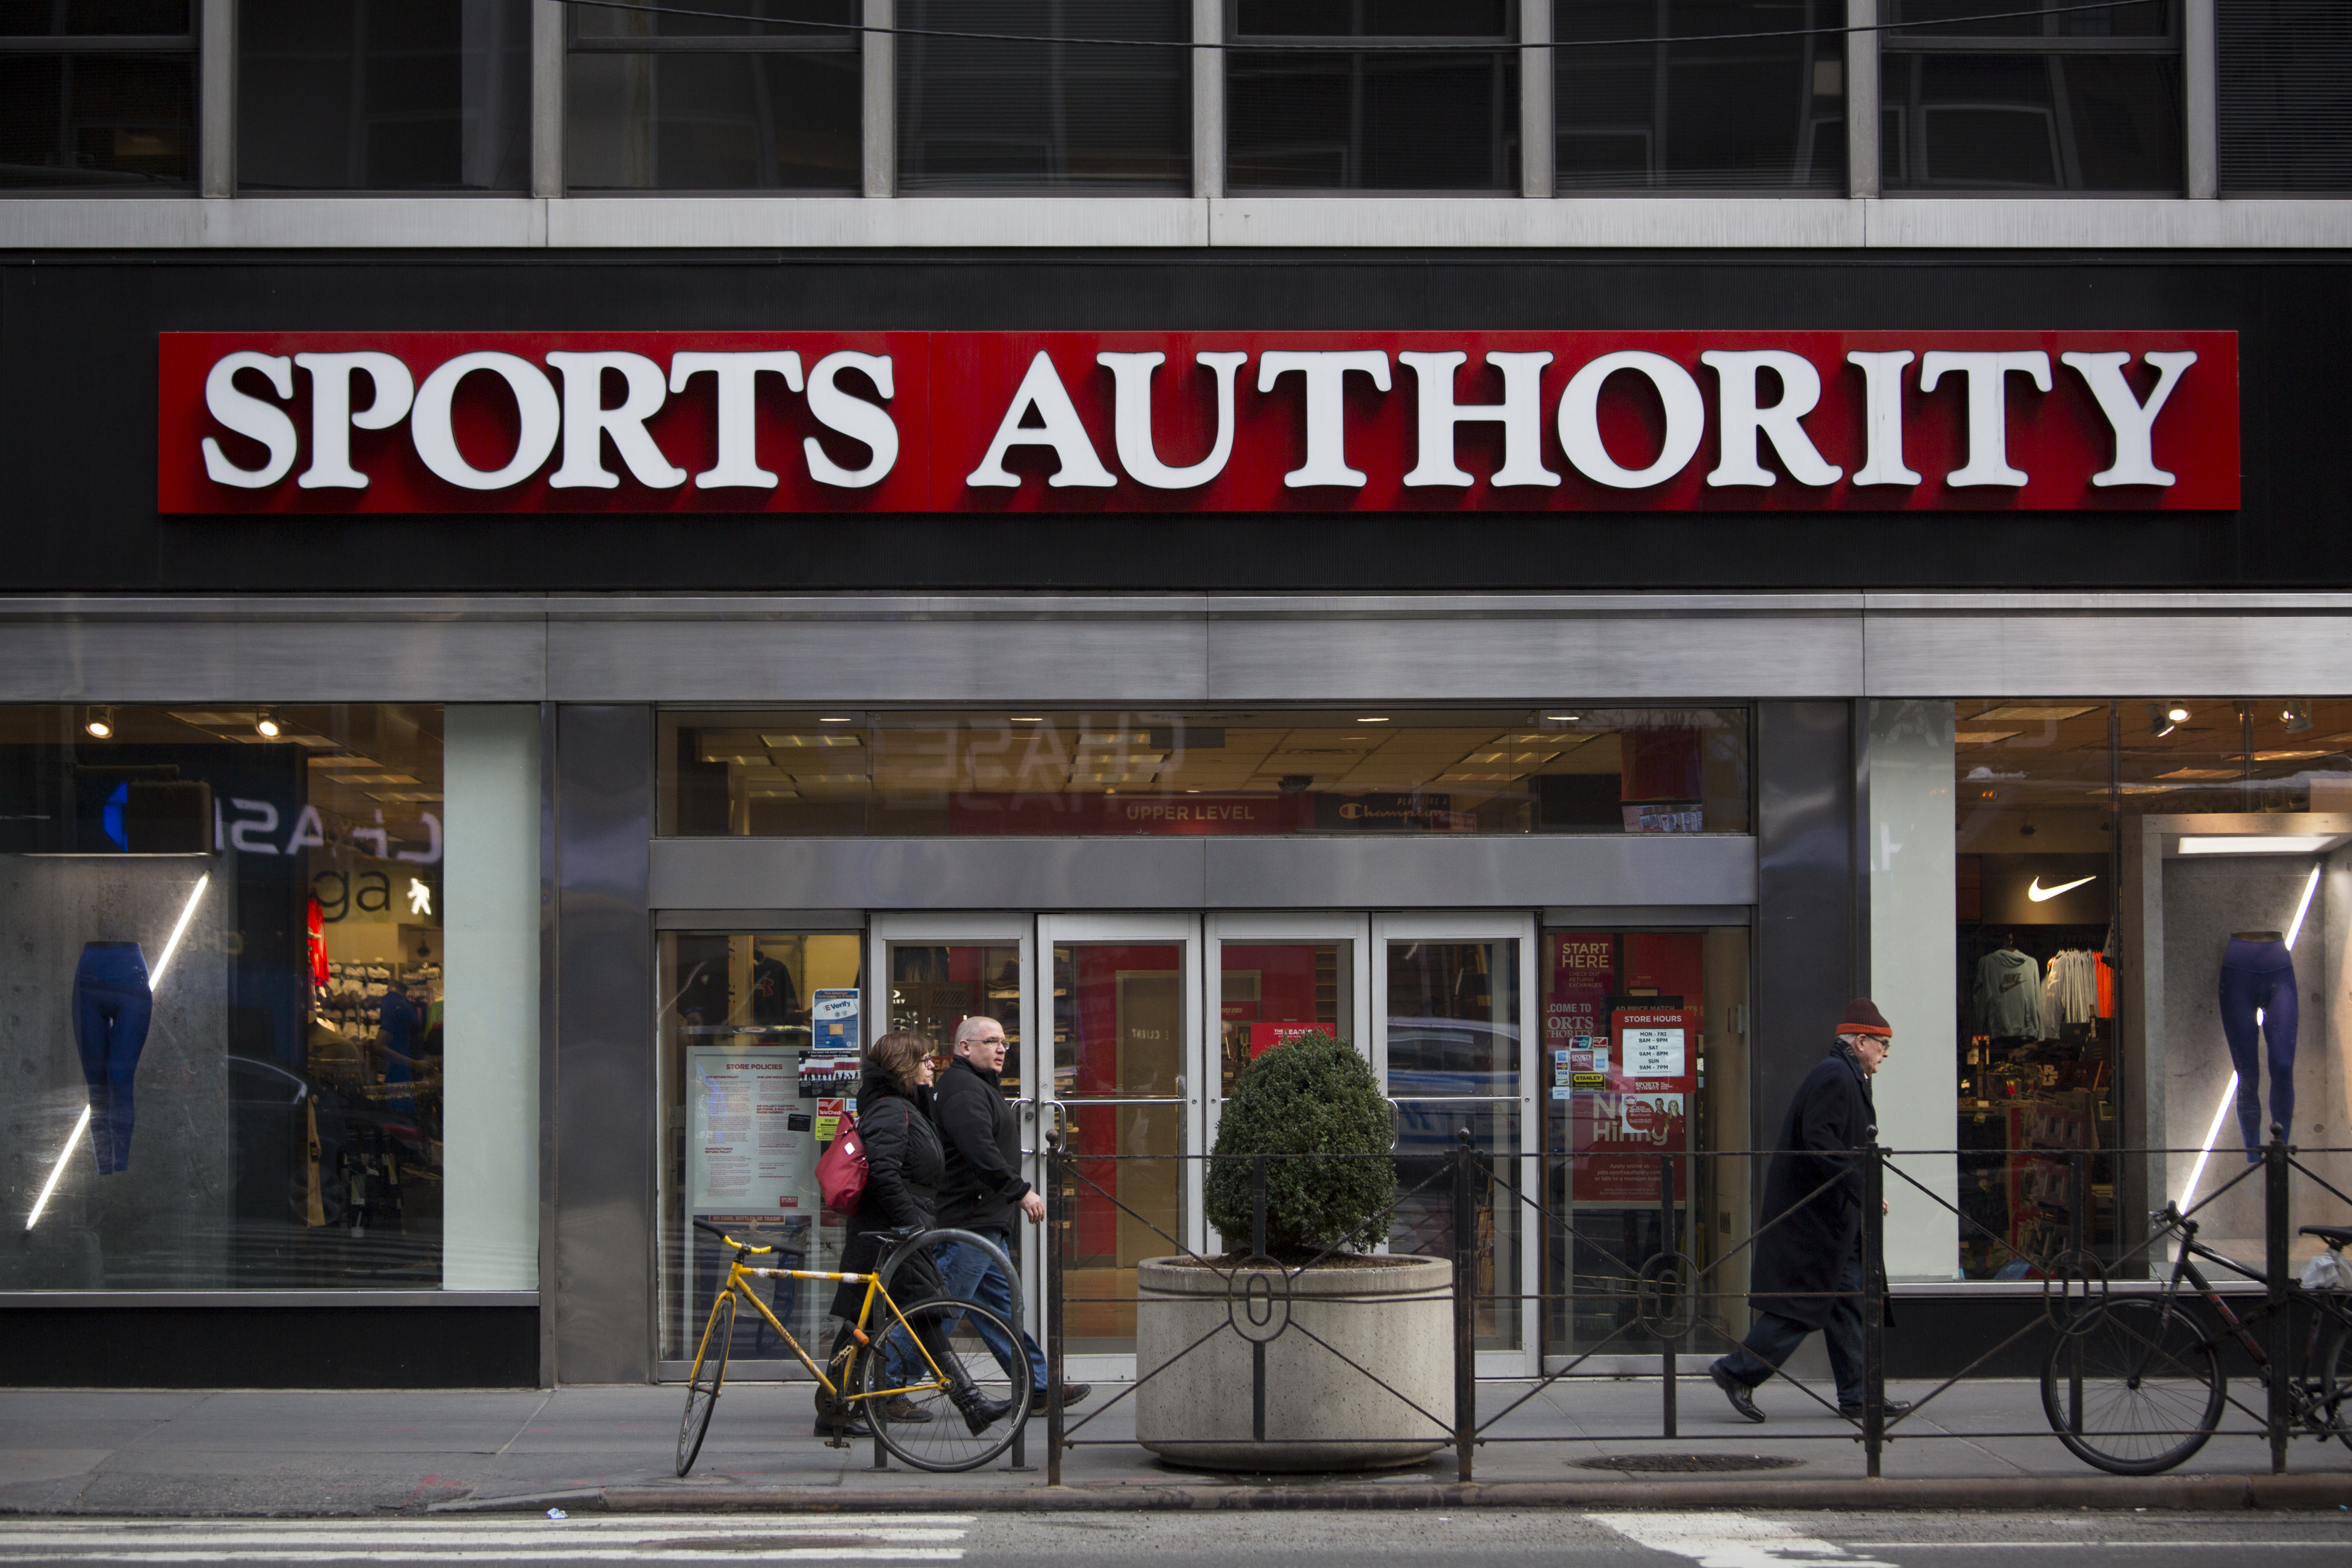 A Sports Authority store